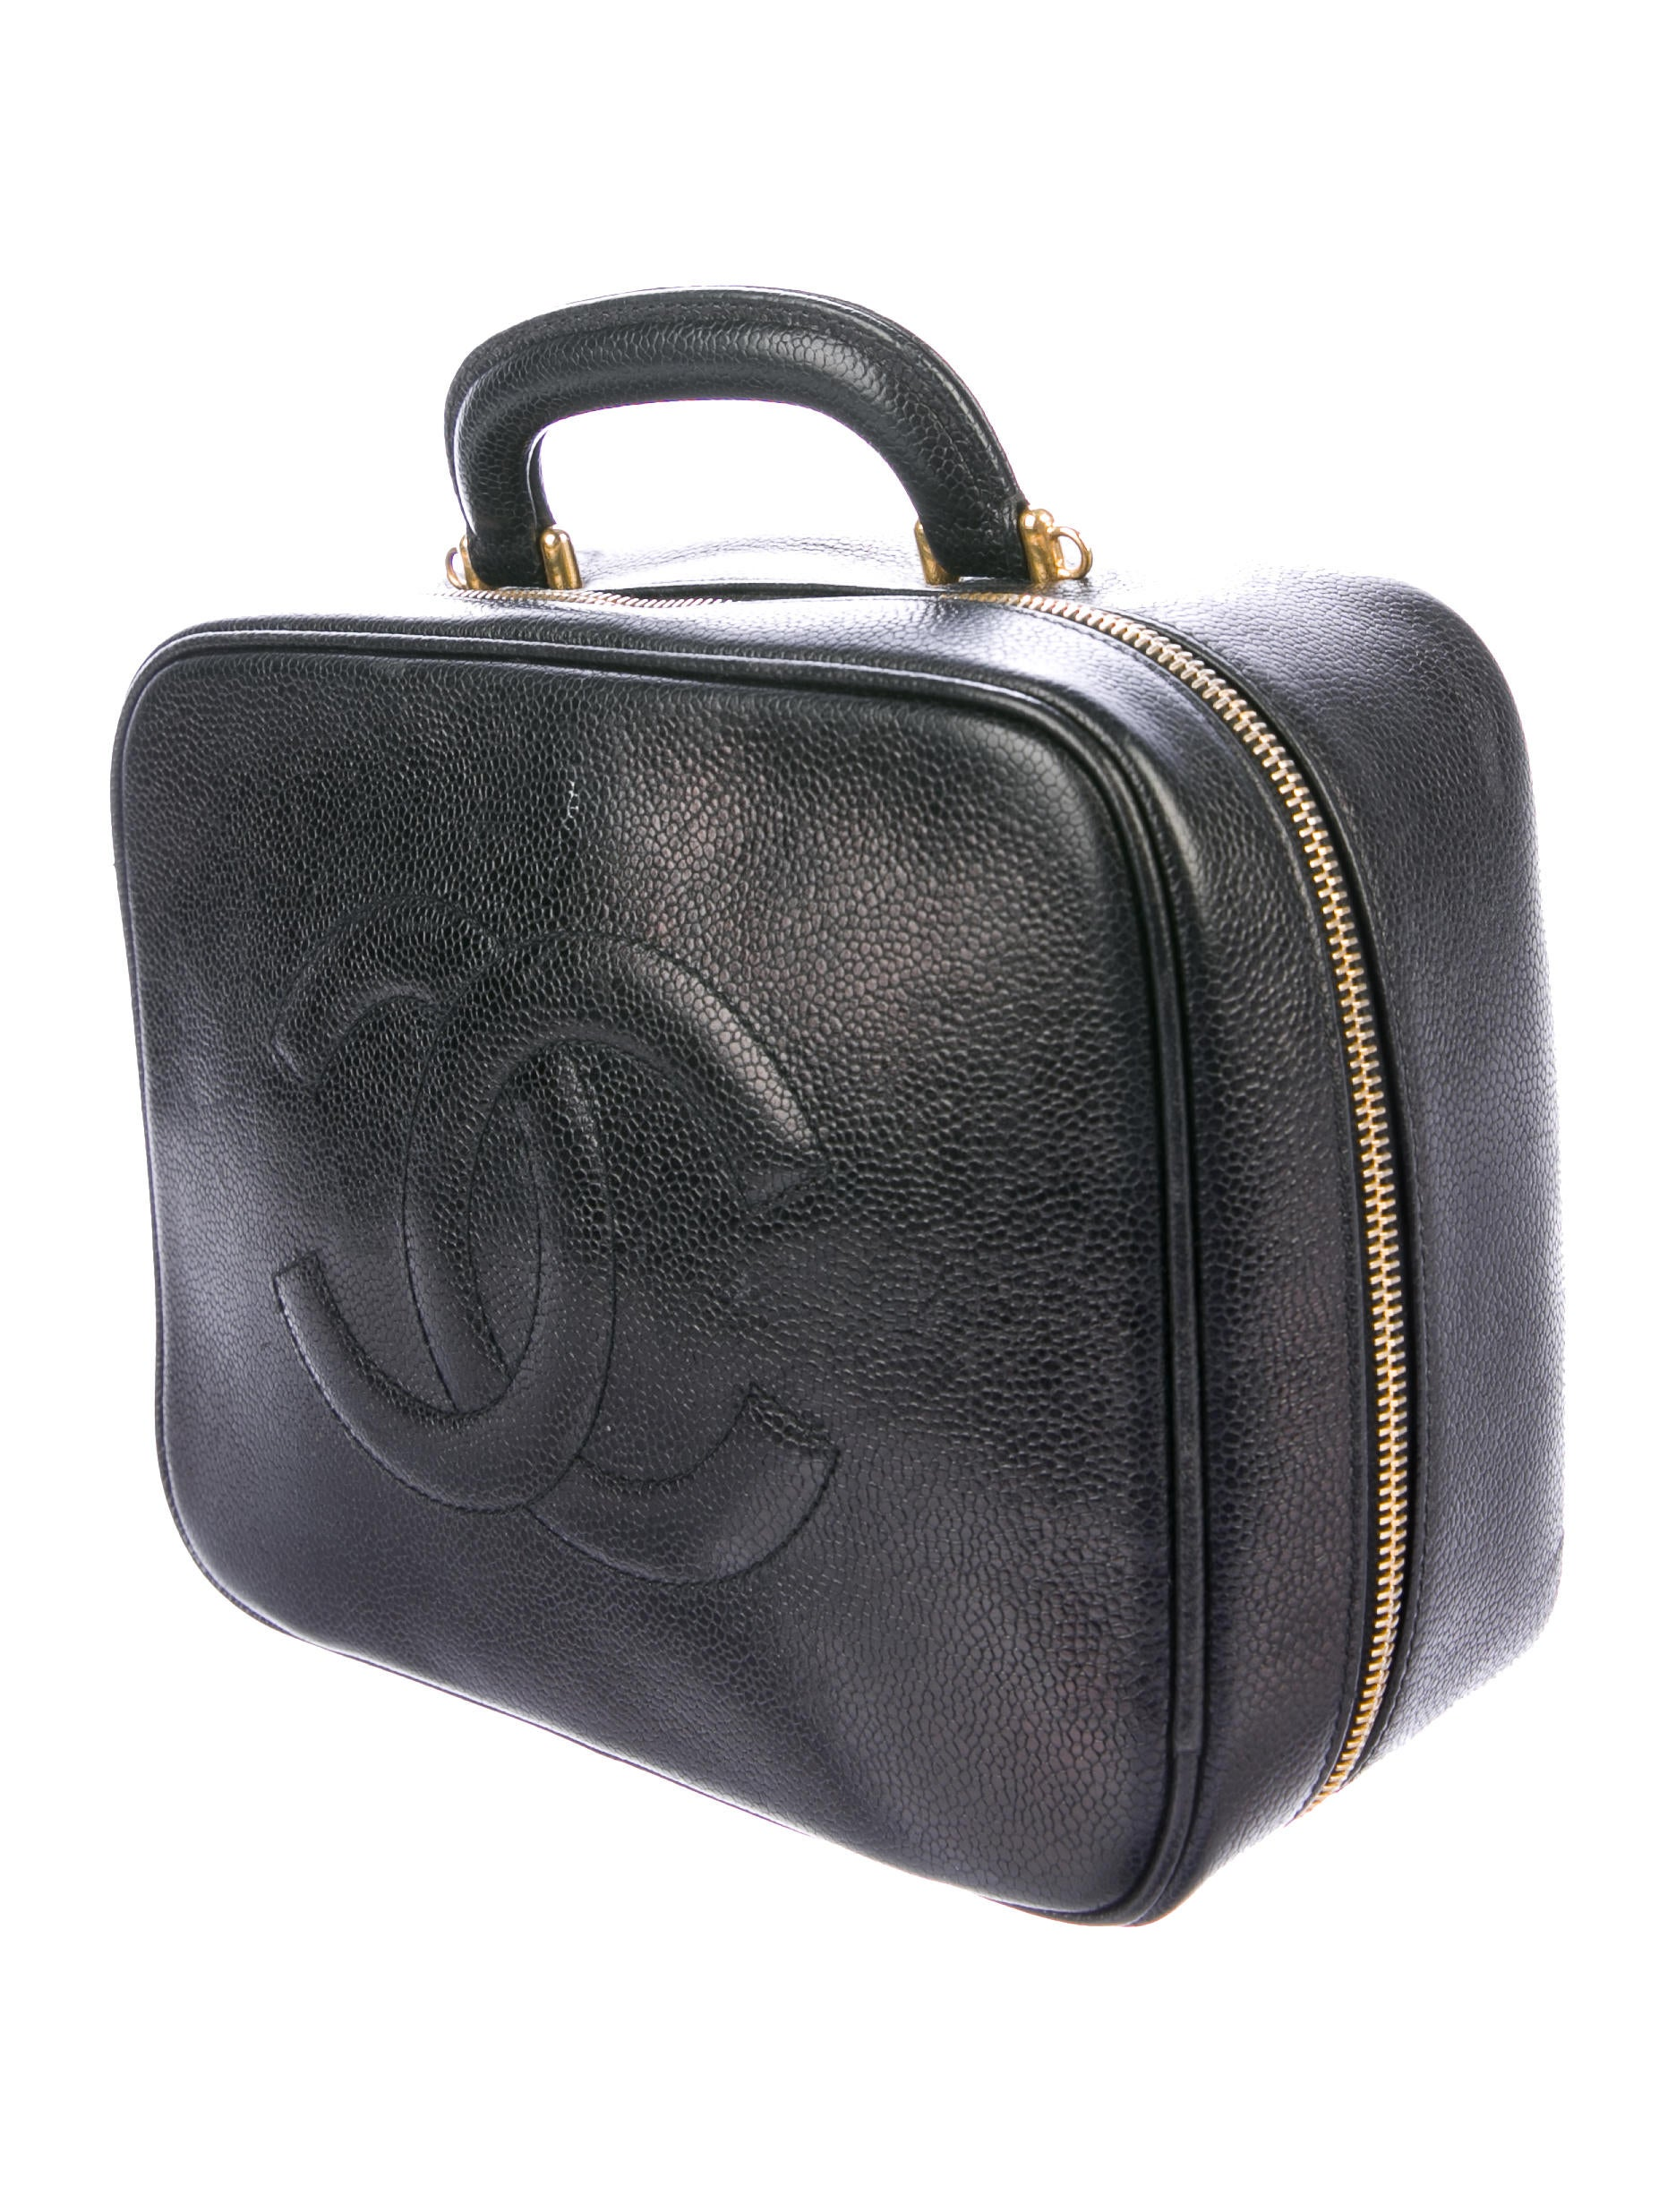 Chanel Vintage Timeless Vanity Case - Accessories ...